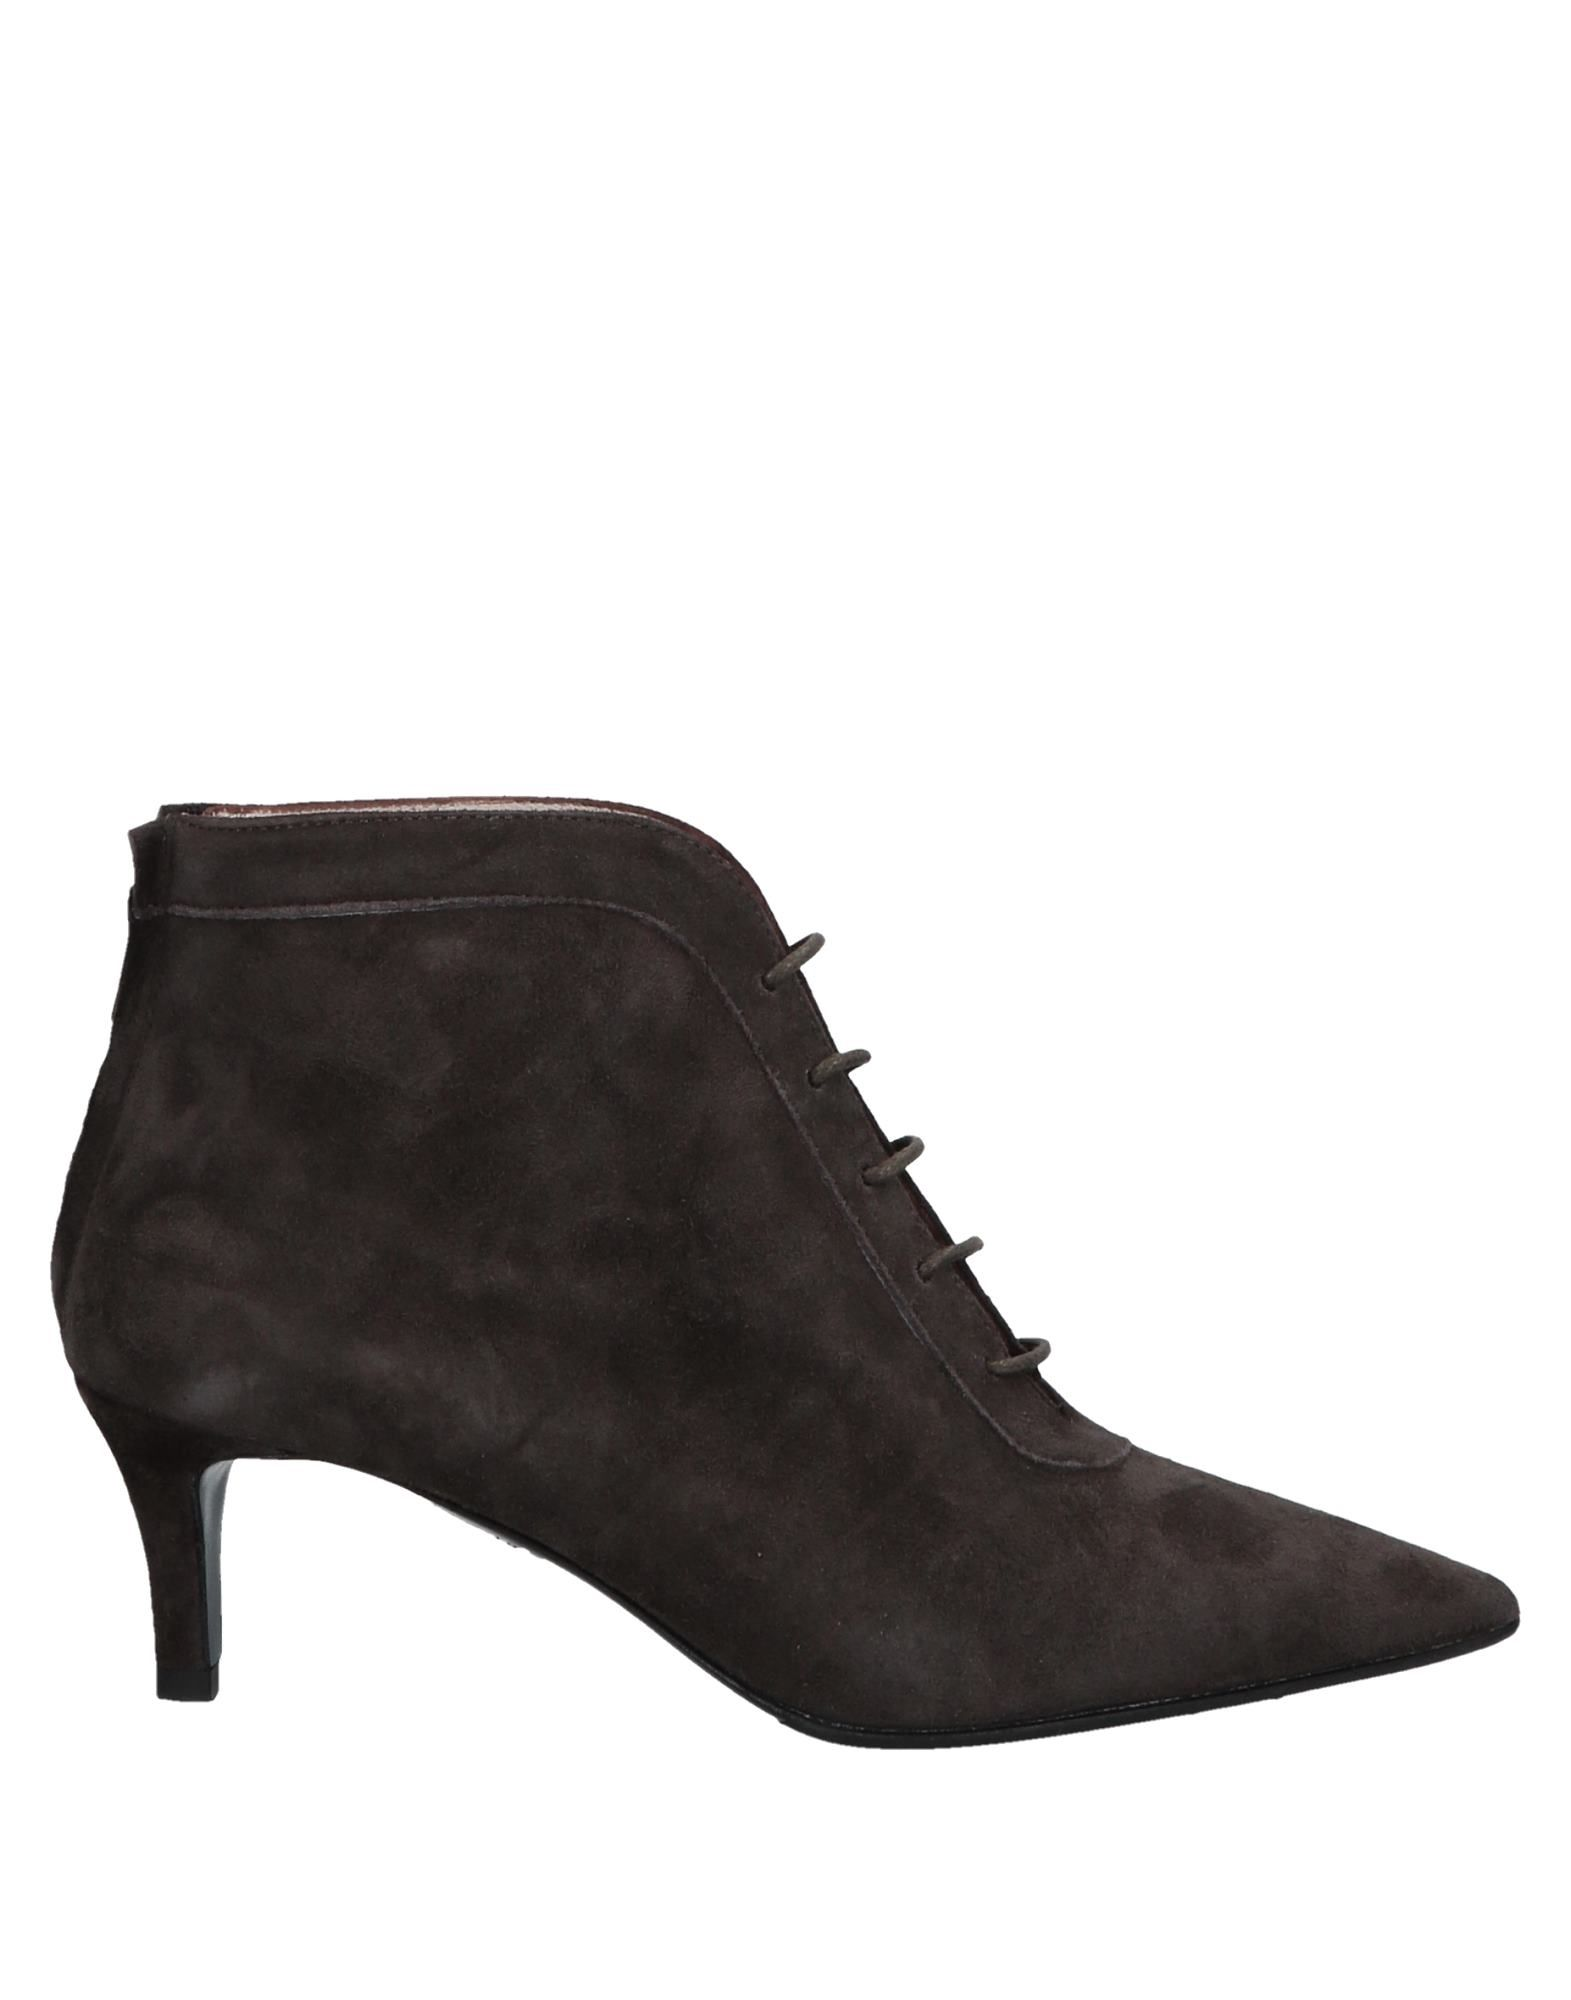 Le Fabian Le Ankle Boot - Women Le Fabian Fabian Ankle Boots online on  United Kingdom - 11563660NH 3e6a32